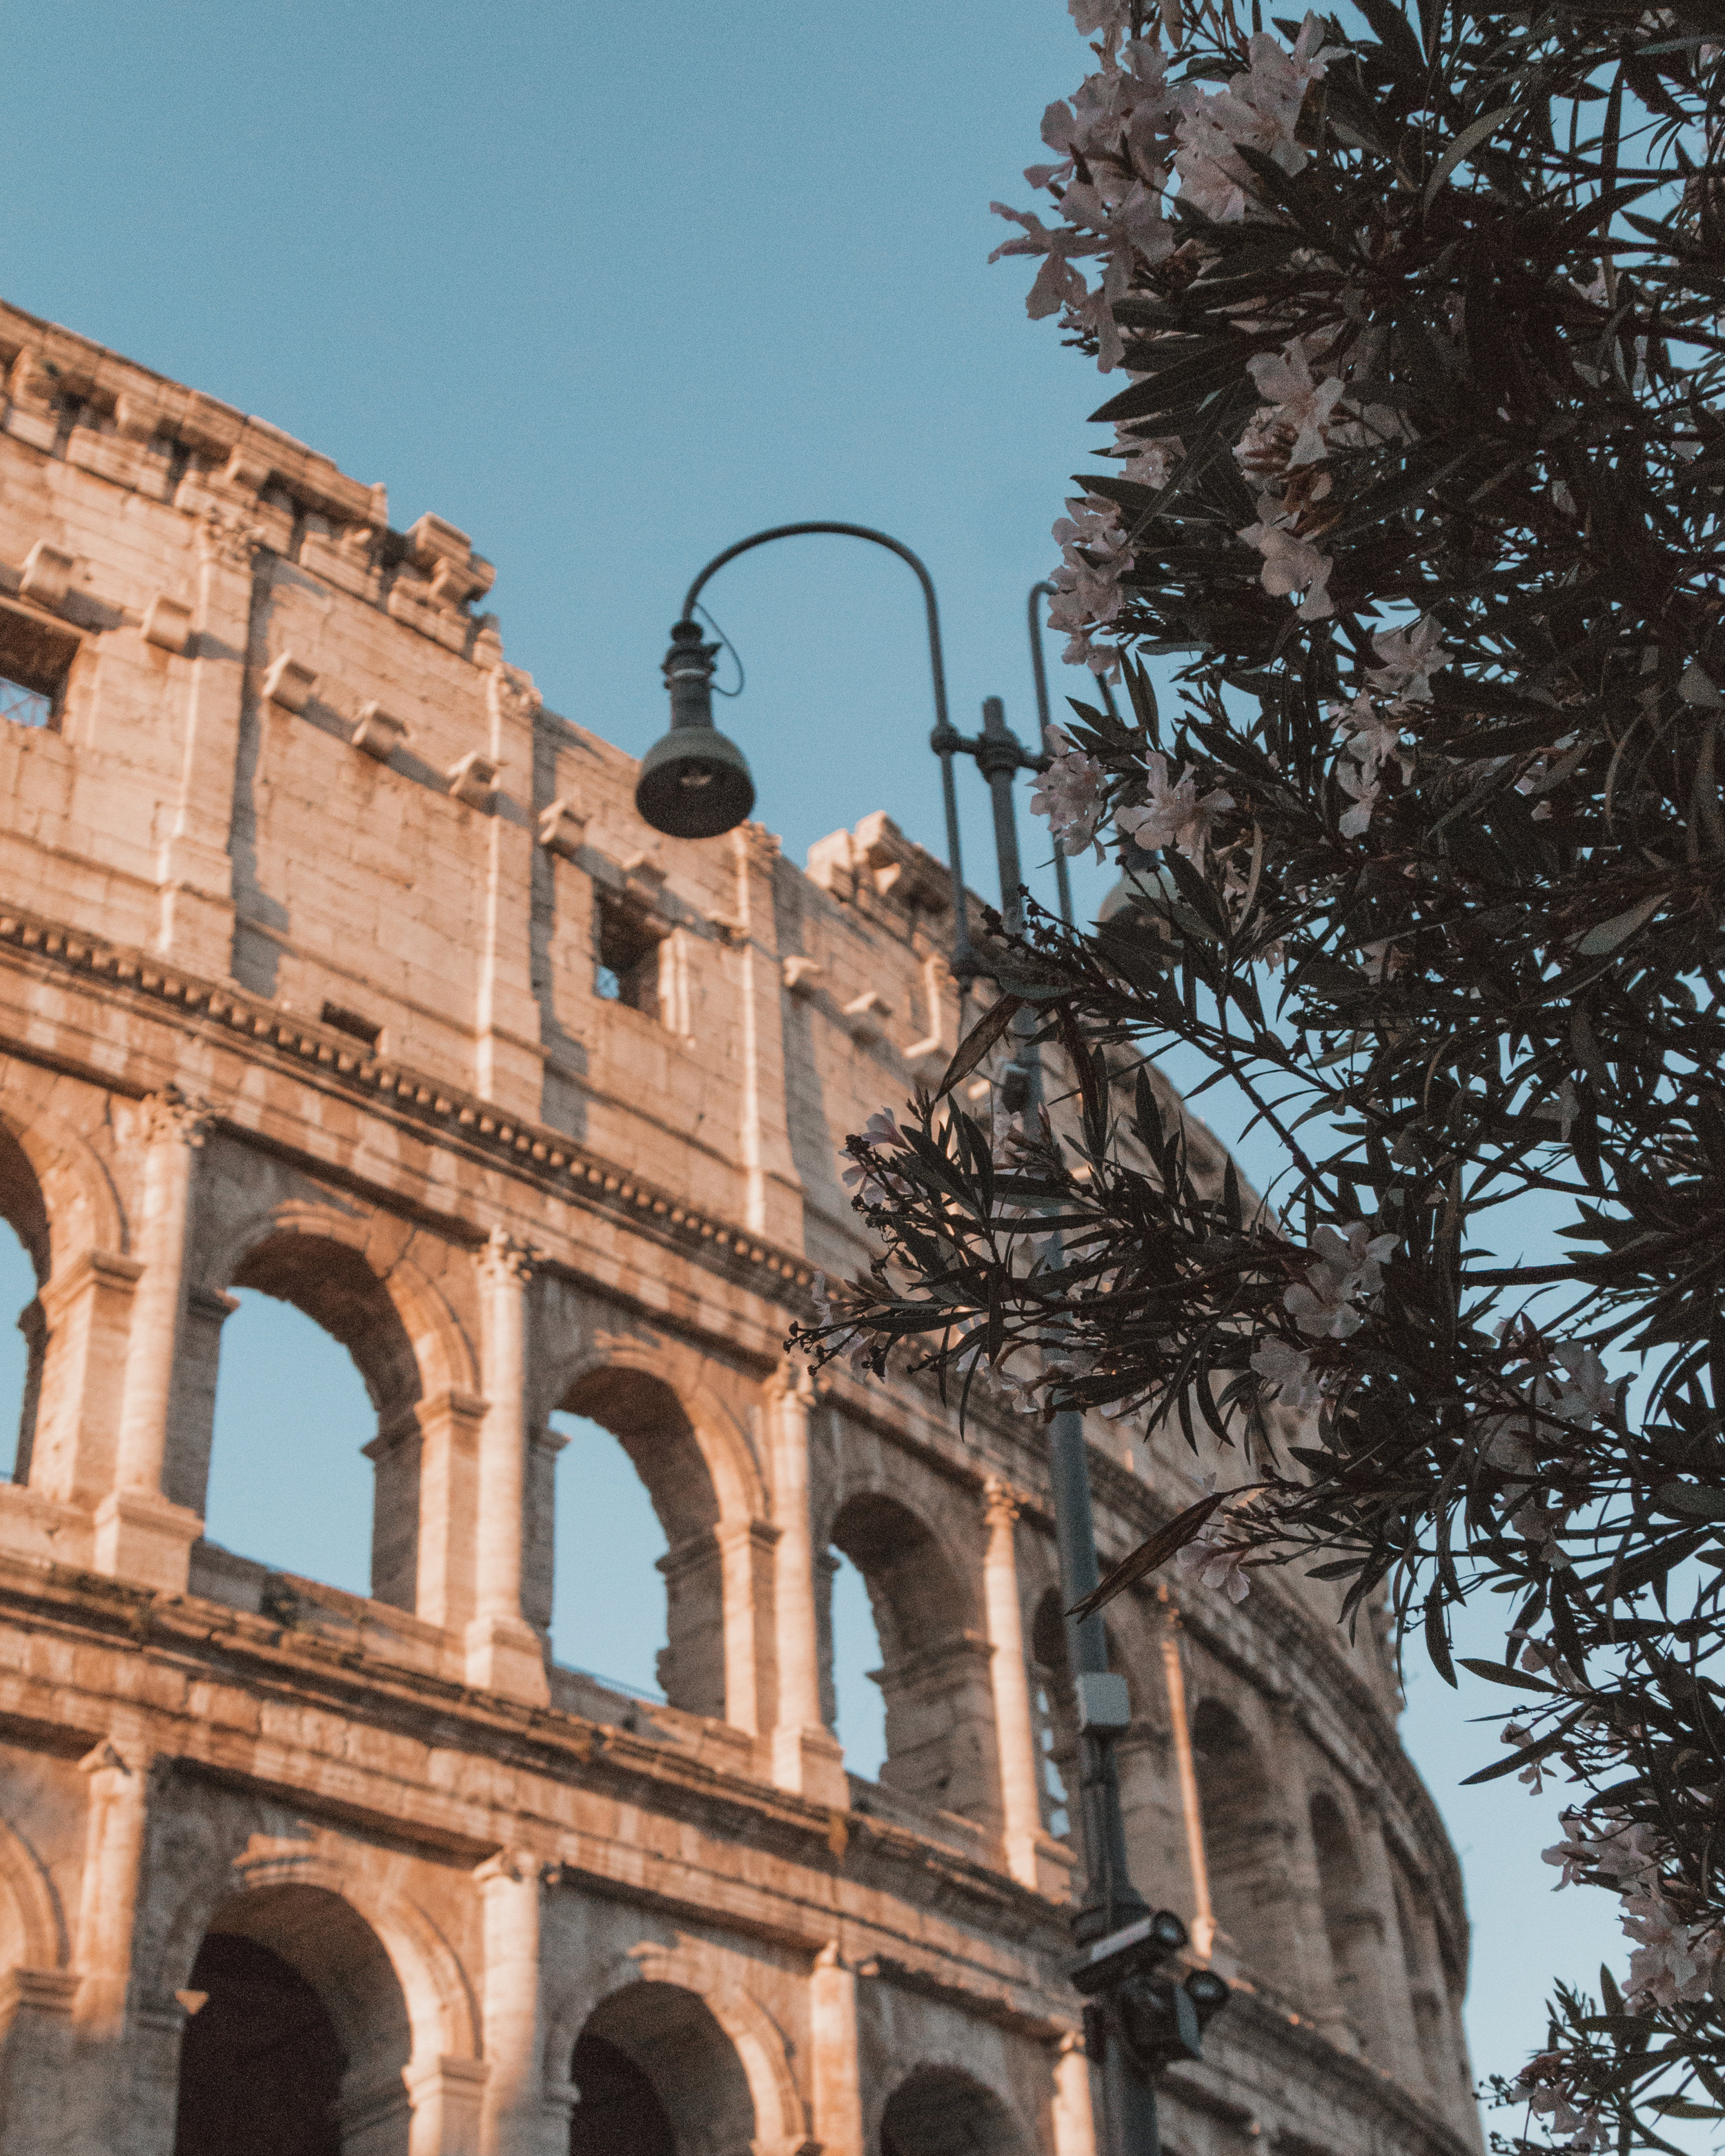 colosseum rome italy photography best places things to do monuments